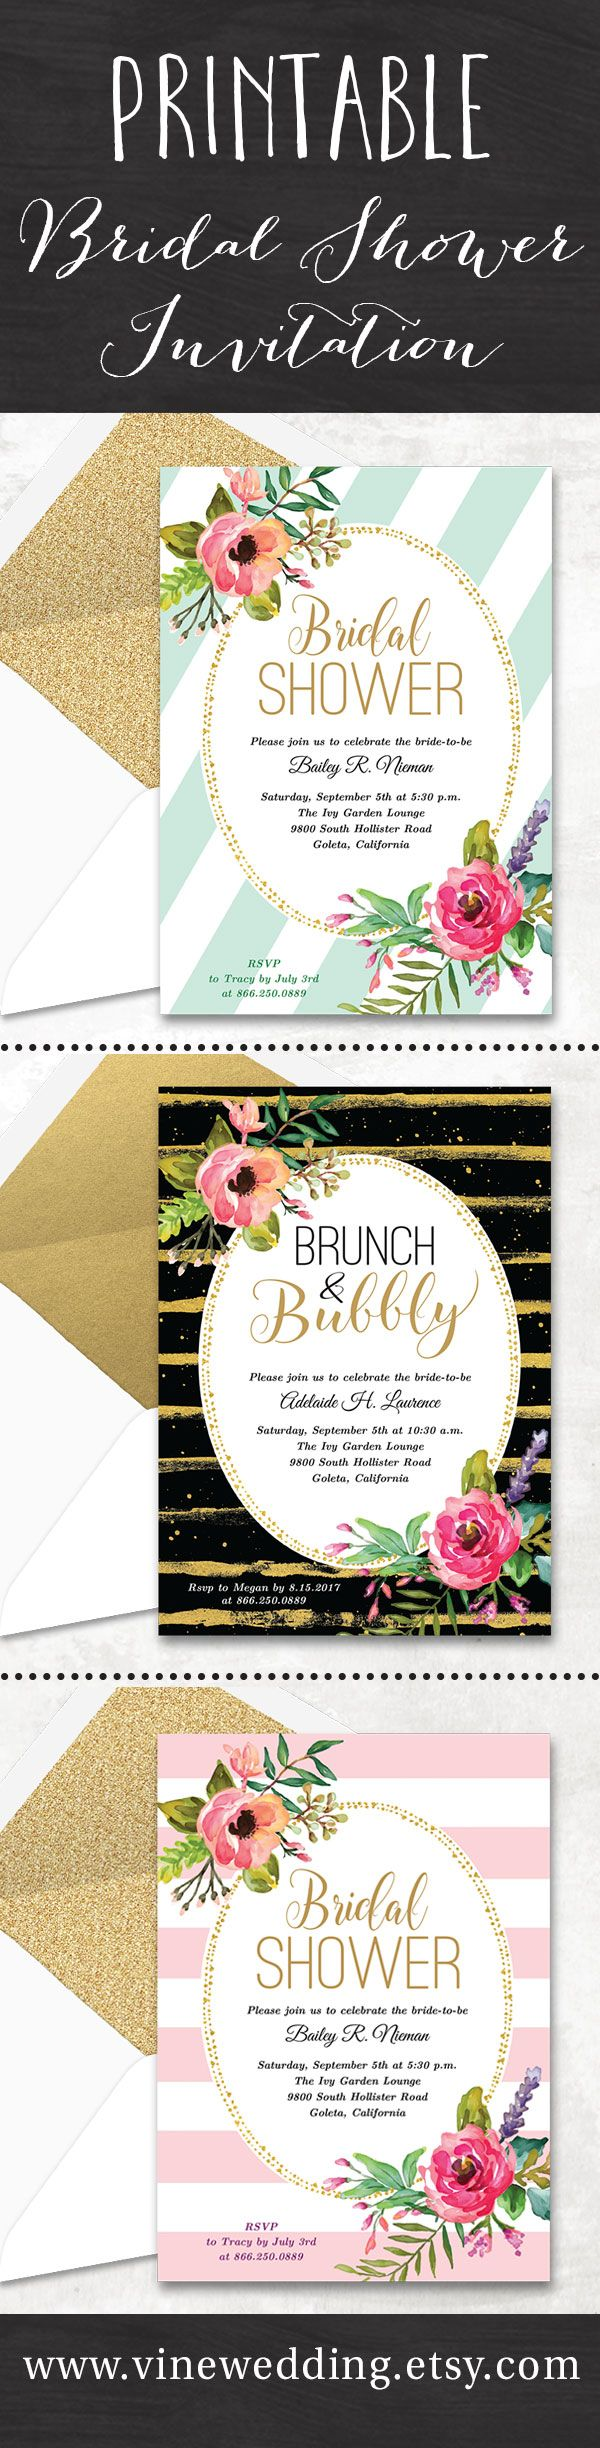 Printable bridal shower invitations at wwwvineweddingetsycom bridal